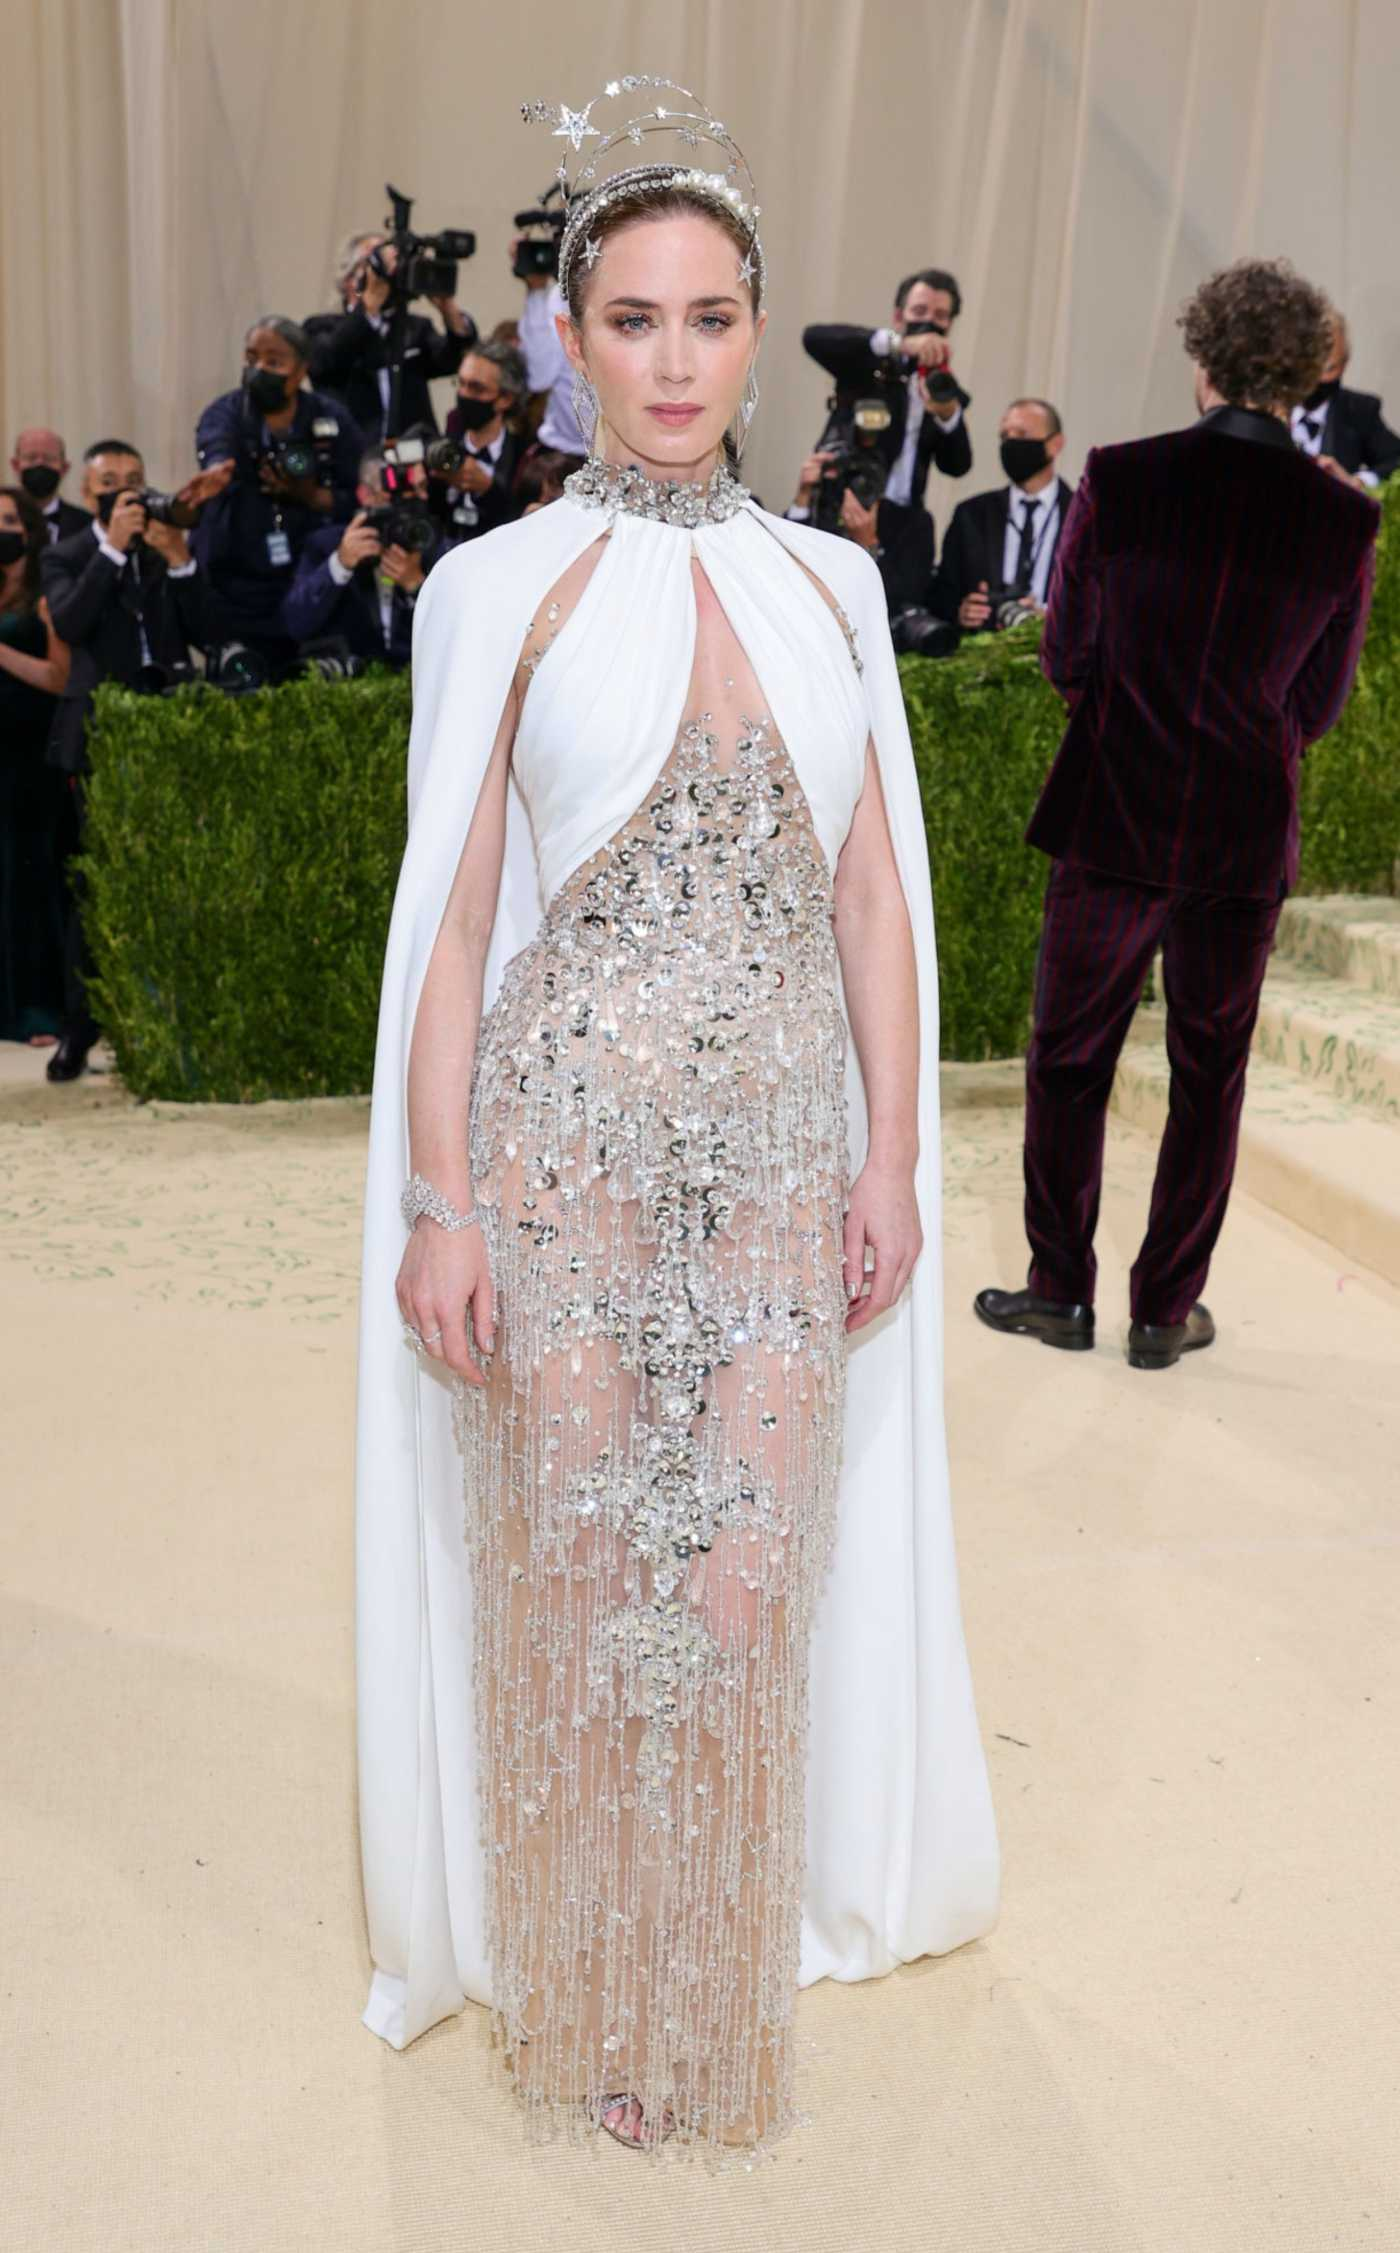 Emily Blunt Attends 2021 Met Gala In America: A Lexicon of Fashion at Metropolitan Museum of Art in New York City 09/13/2021